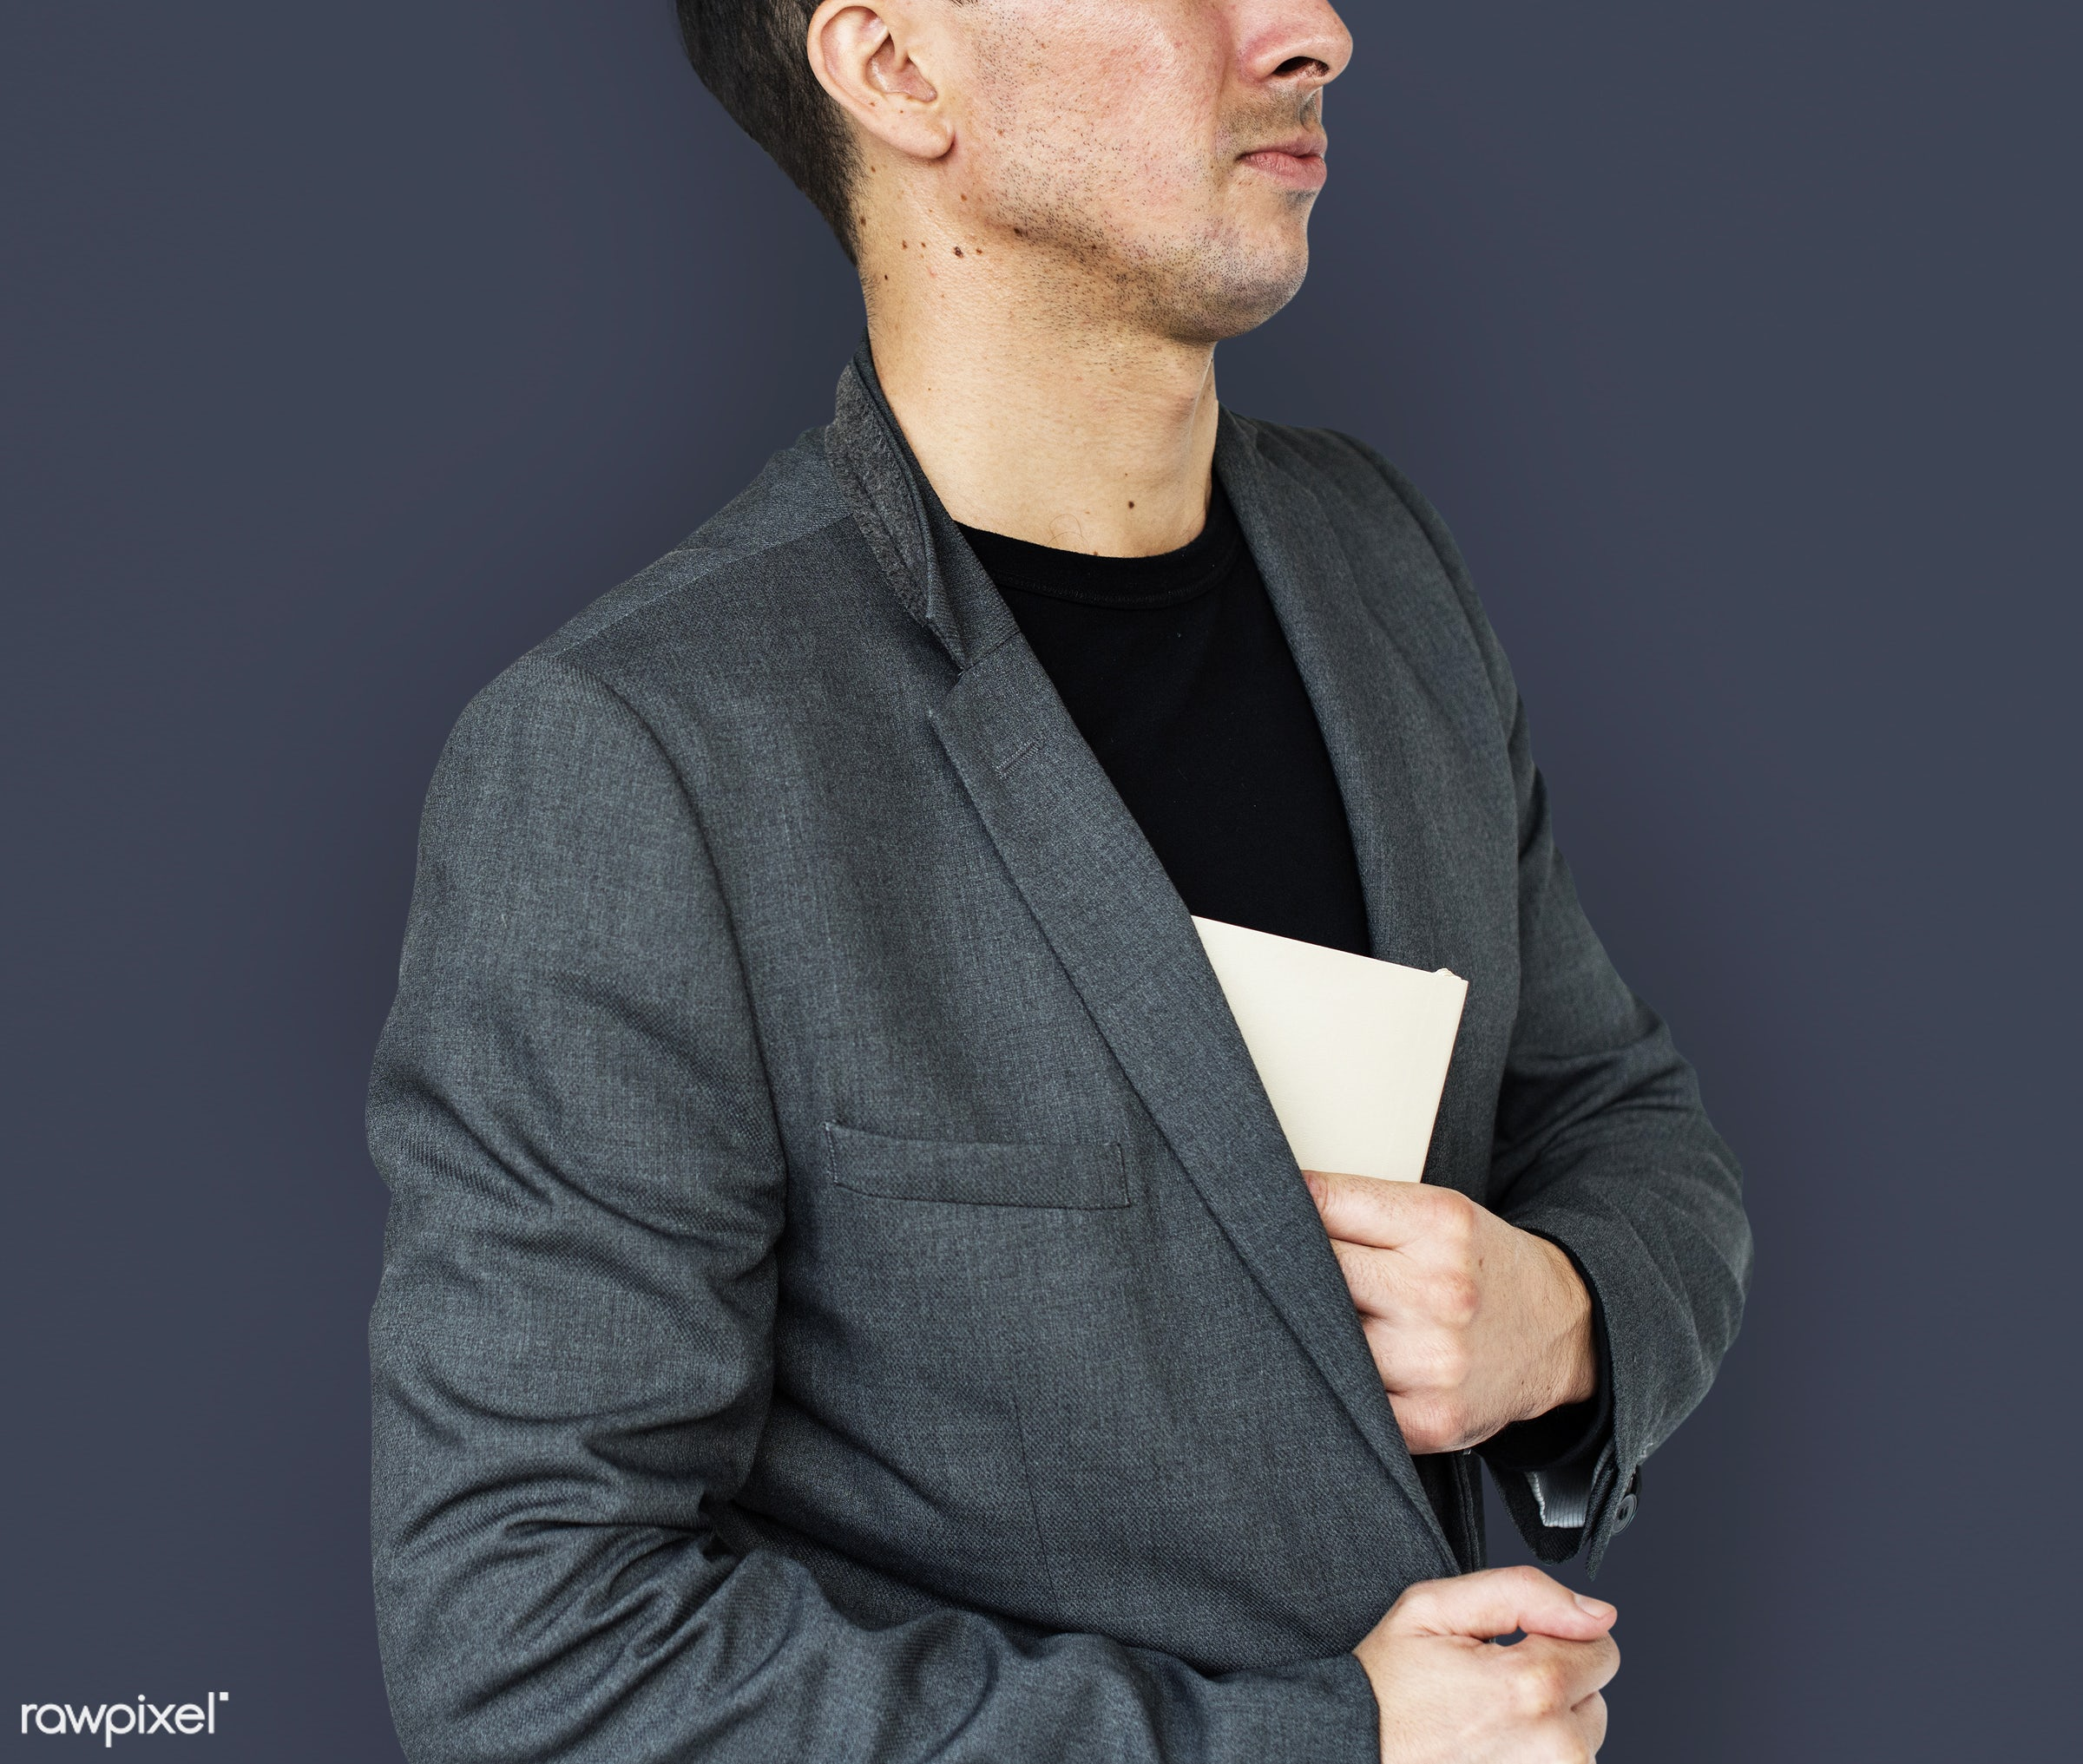 studio, expression, person, business wear, people, business, caucasian, pose, document, man, formal attire, isolated, formal...